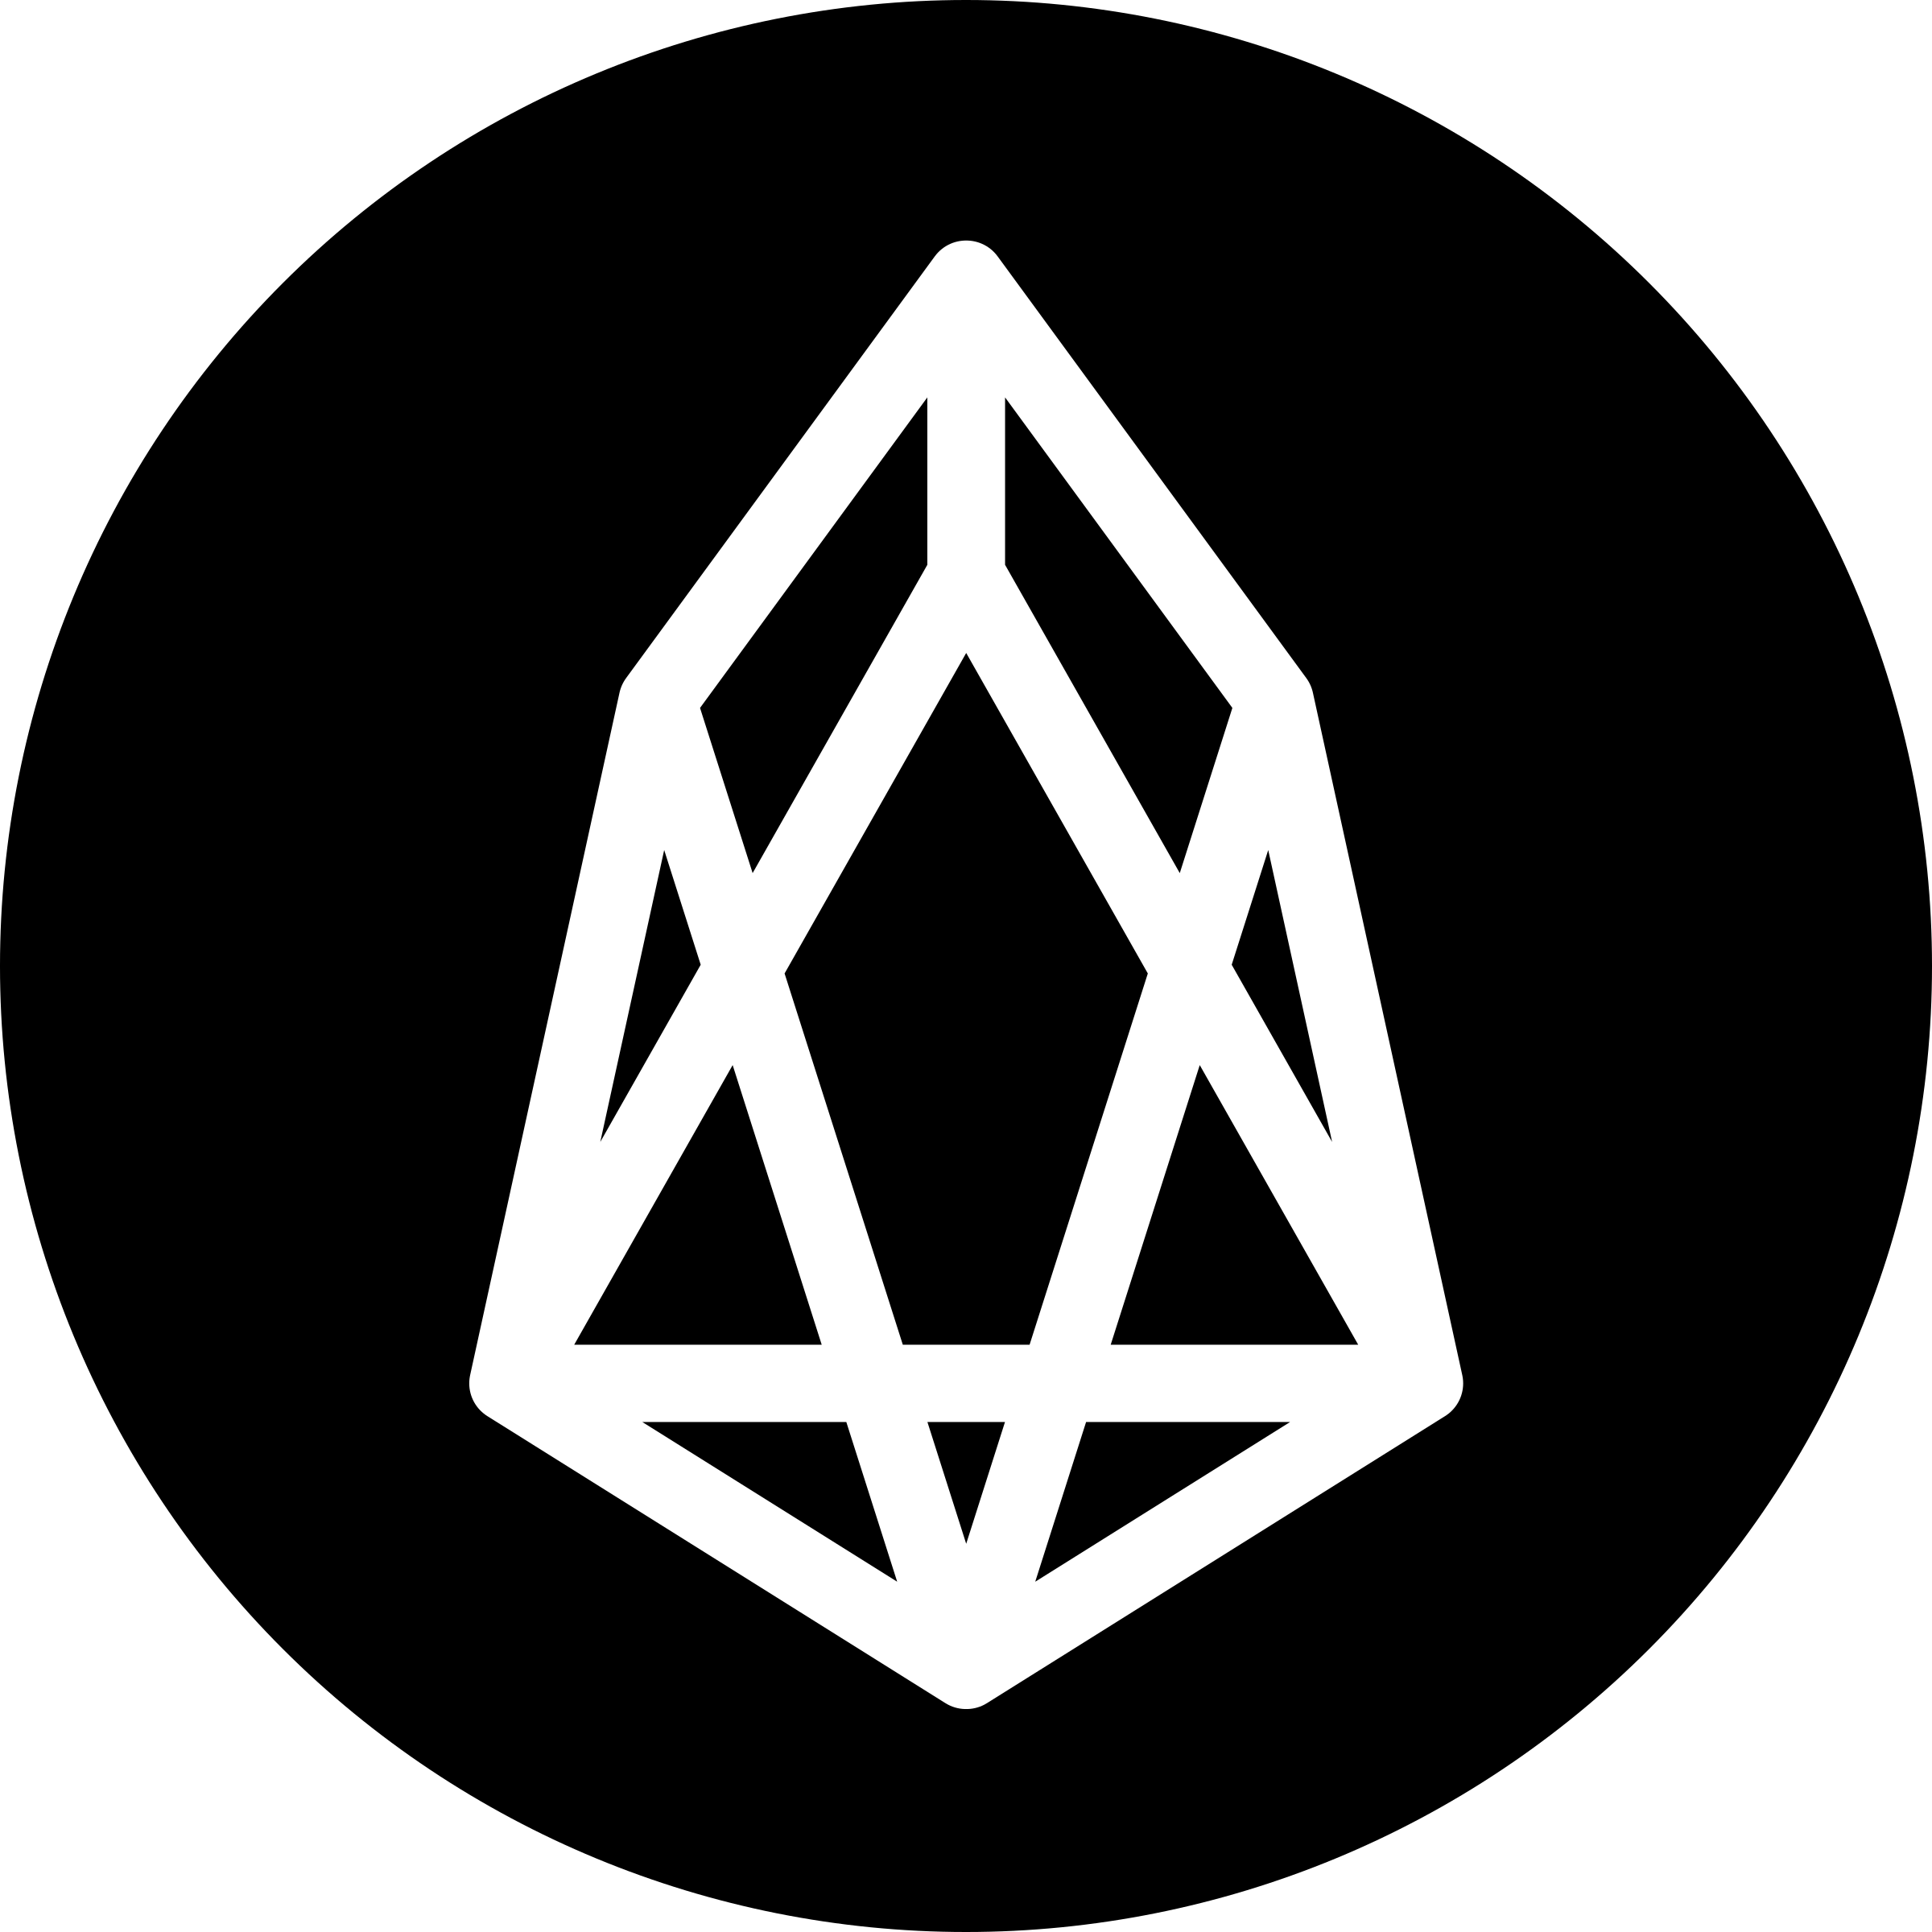 Earn EOS in 2020 Eos, Crypto currencies, Blockchain